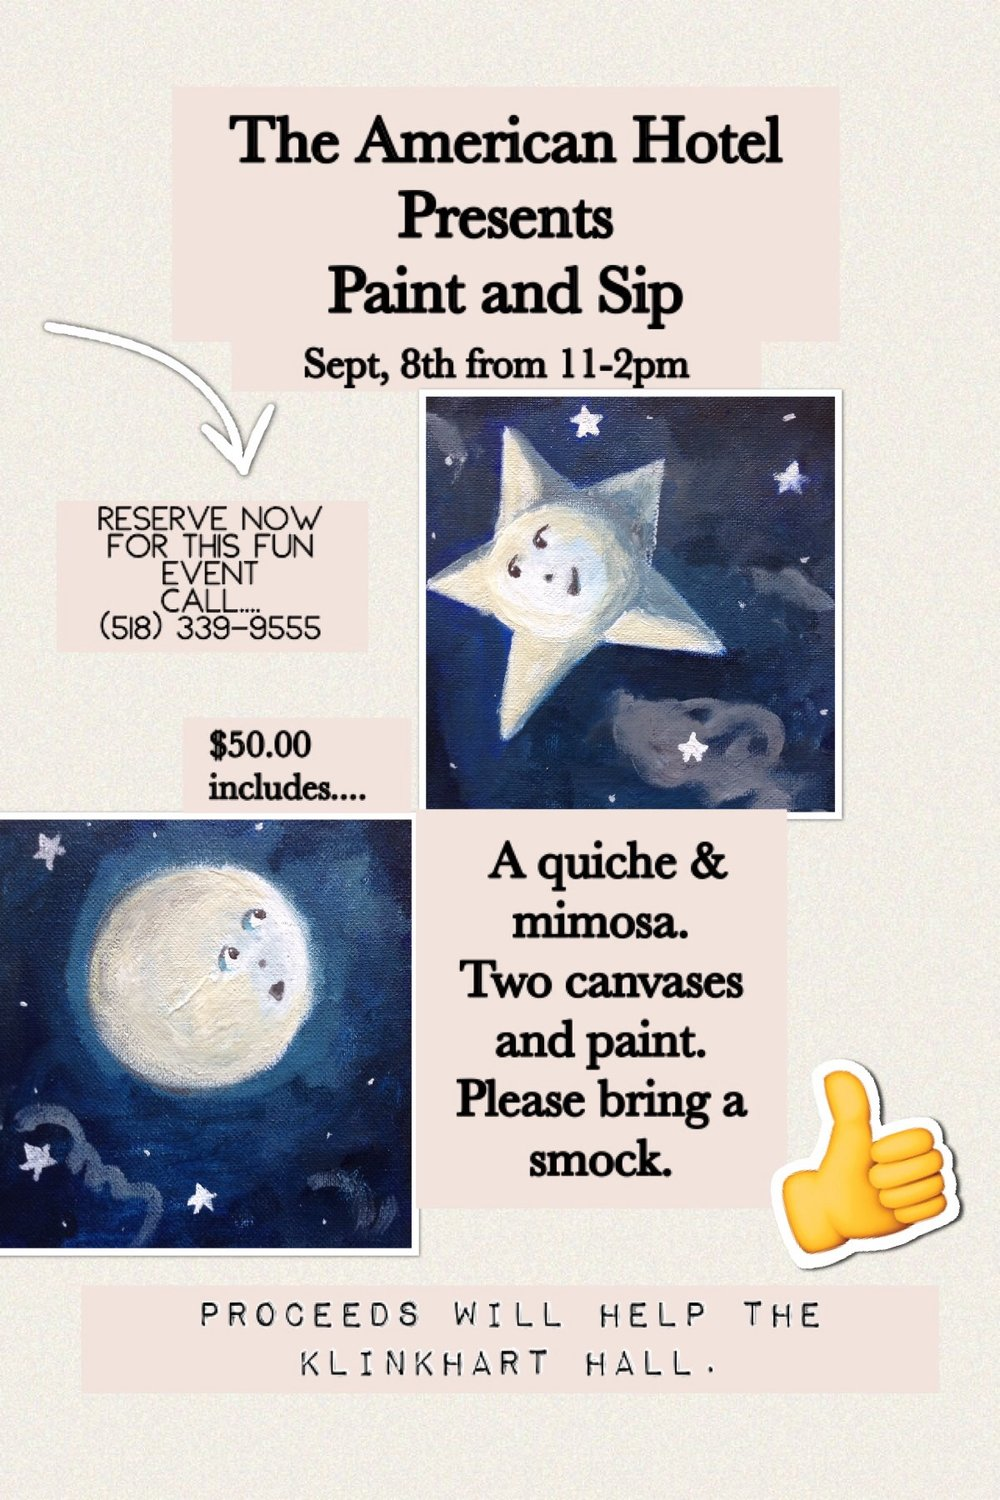 Paint and Sip poster